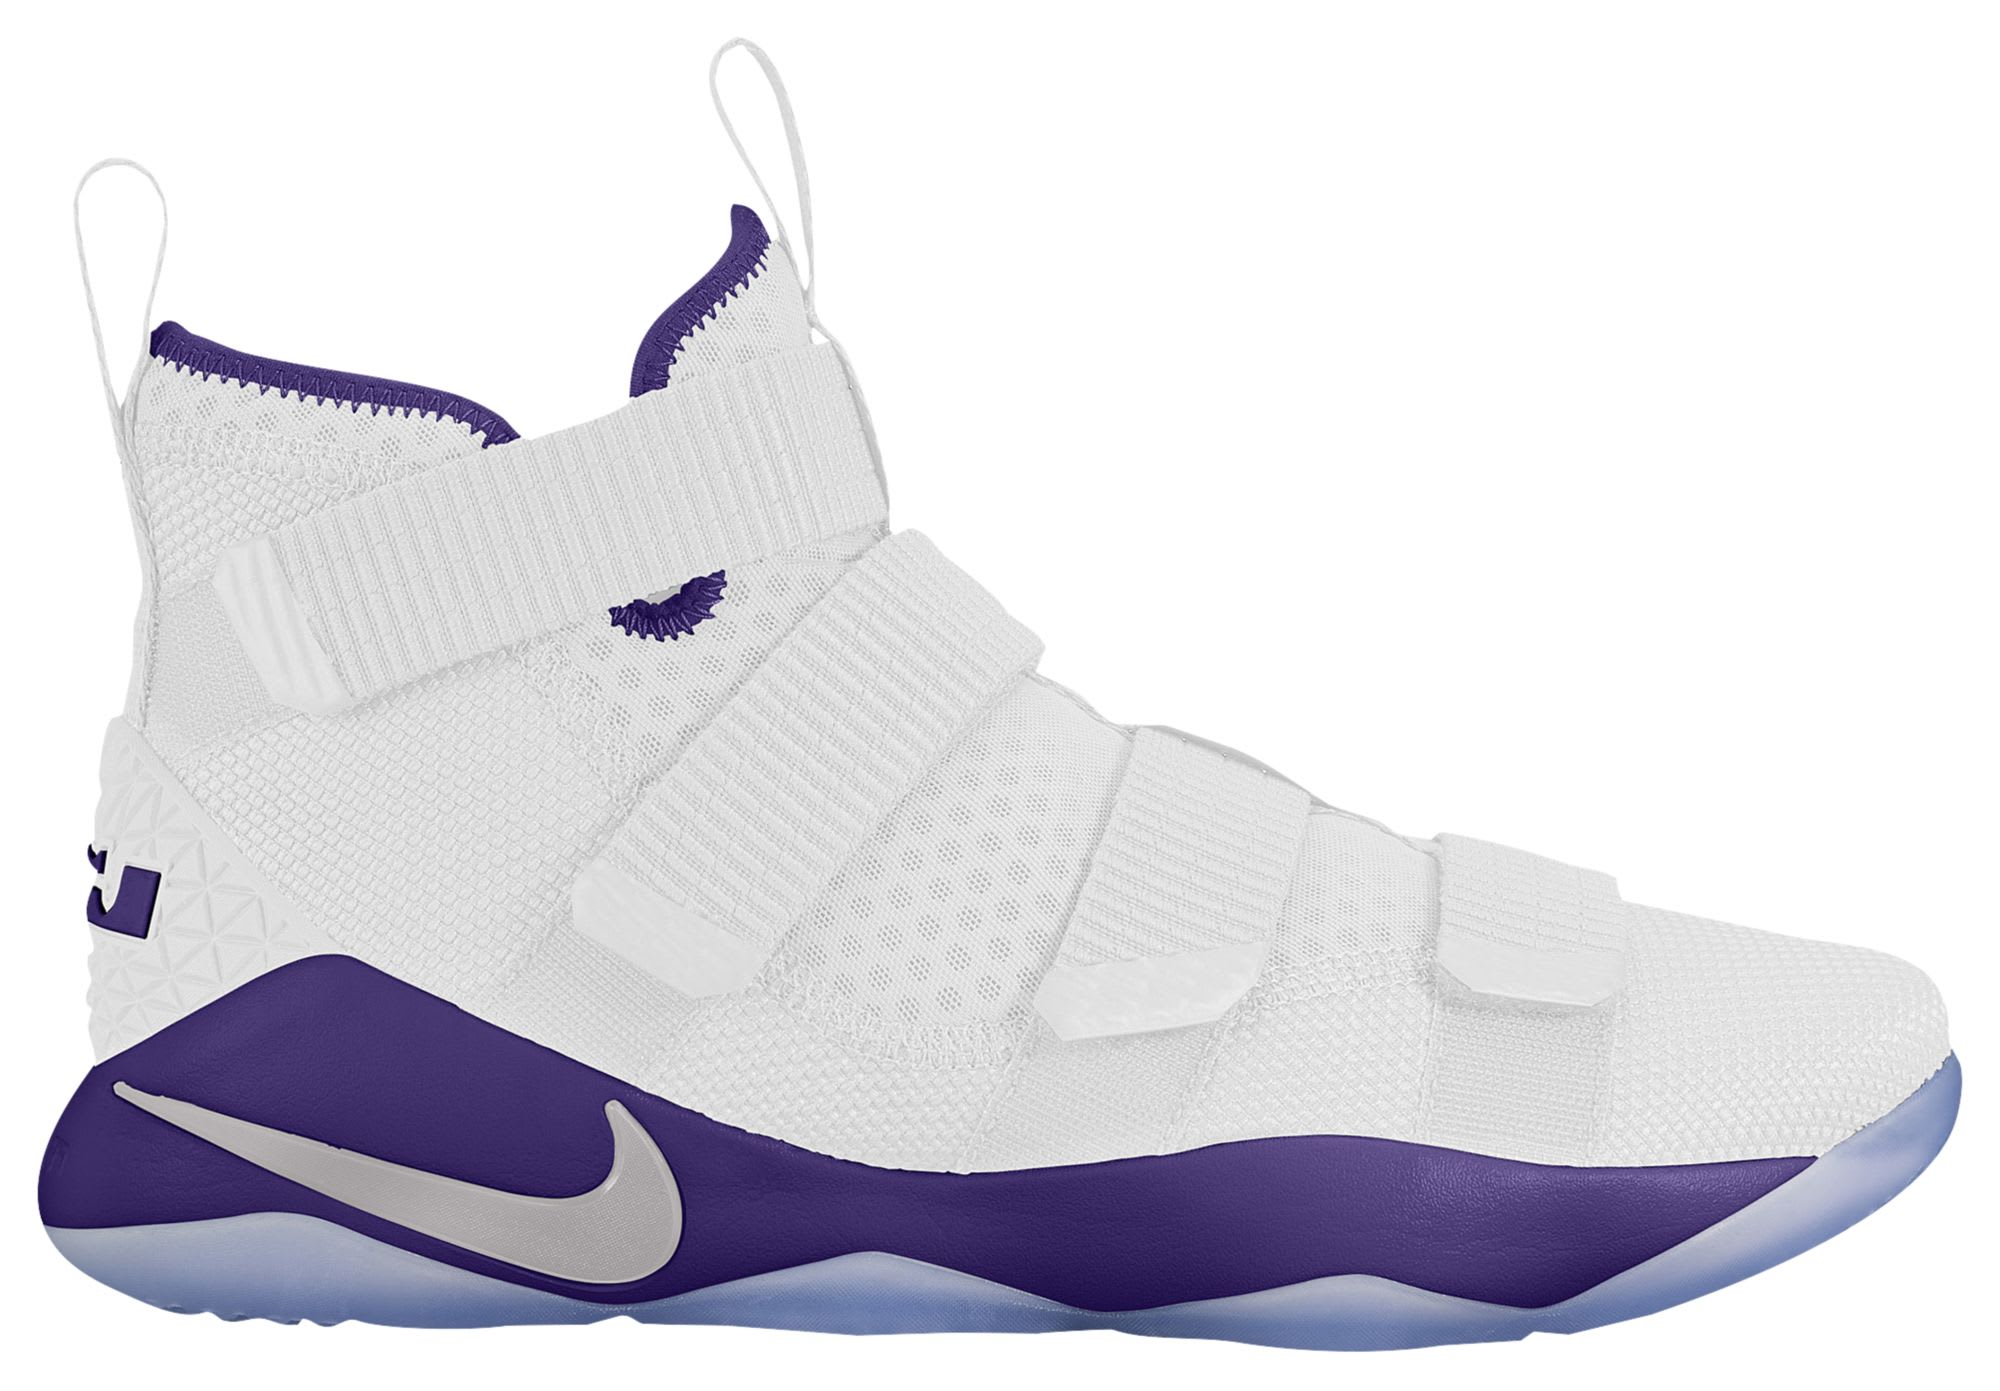 Nike LeBron Soldier 11 TB White Purple